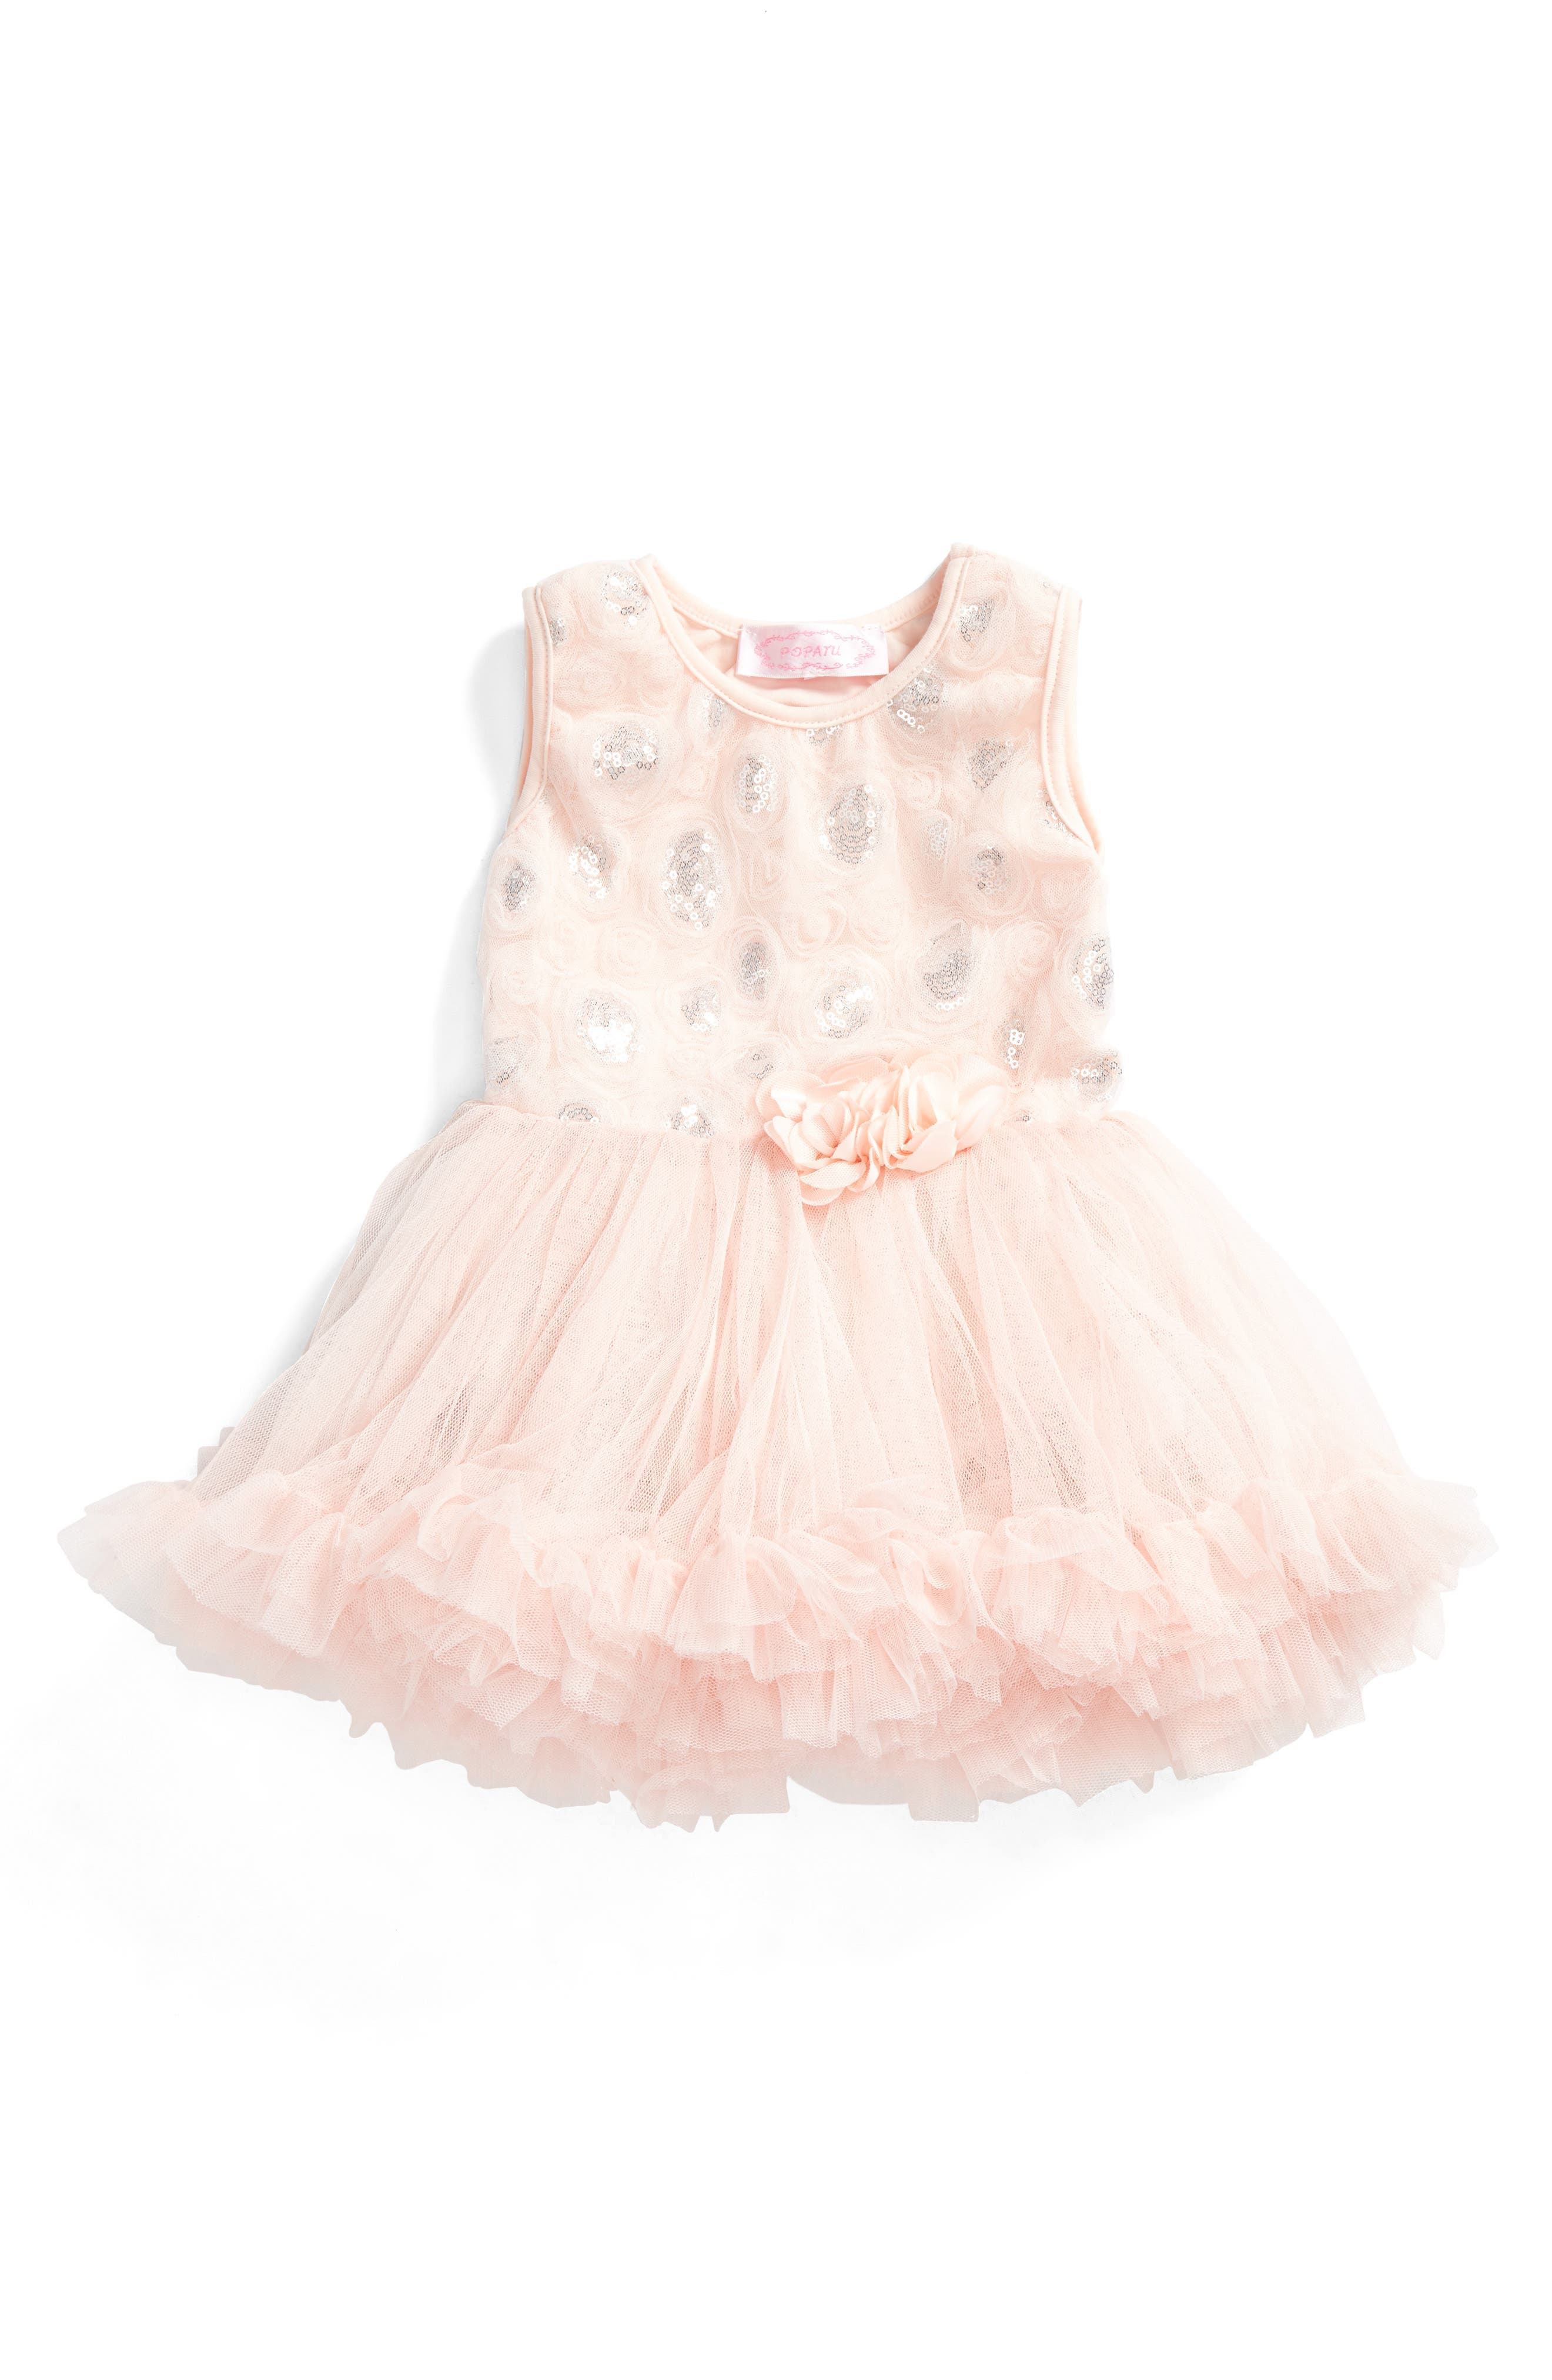 Rosette Sequin Dress,                             Alternate thumbnail 2, color,                             Dusty Pink